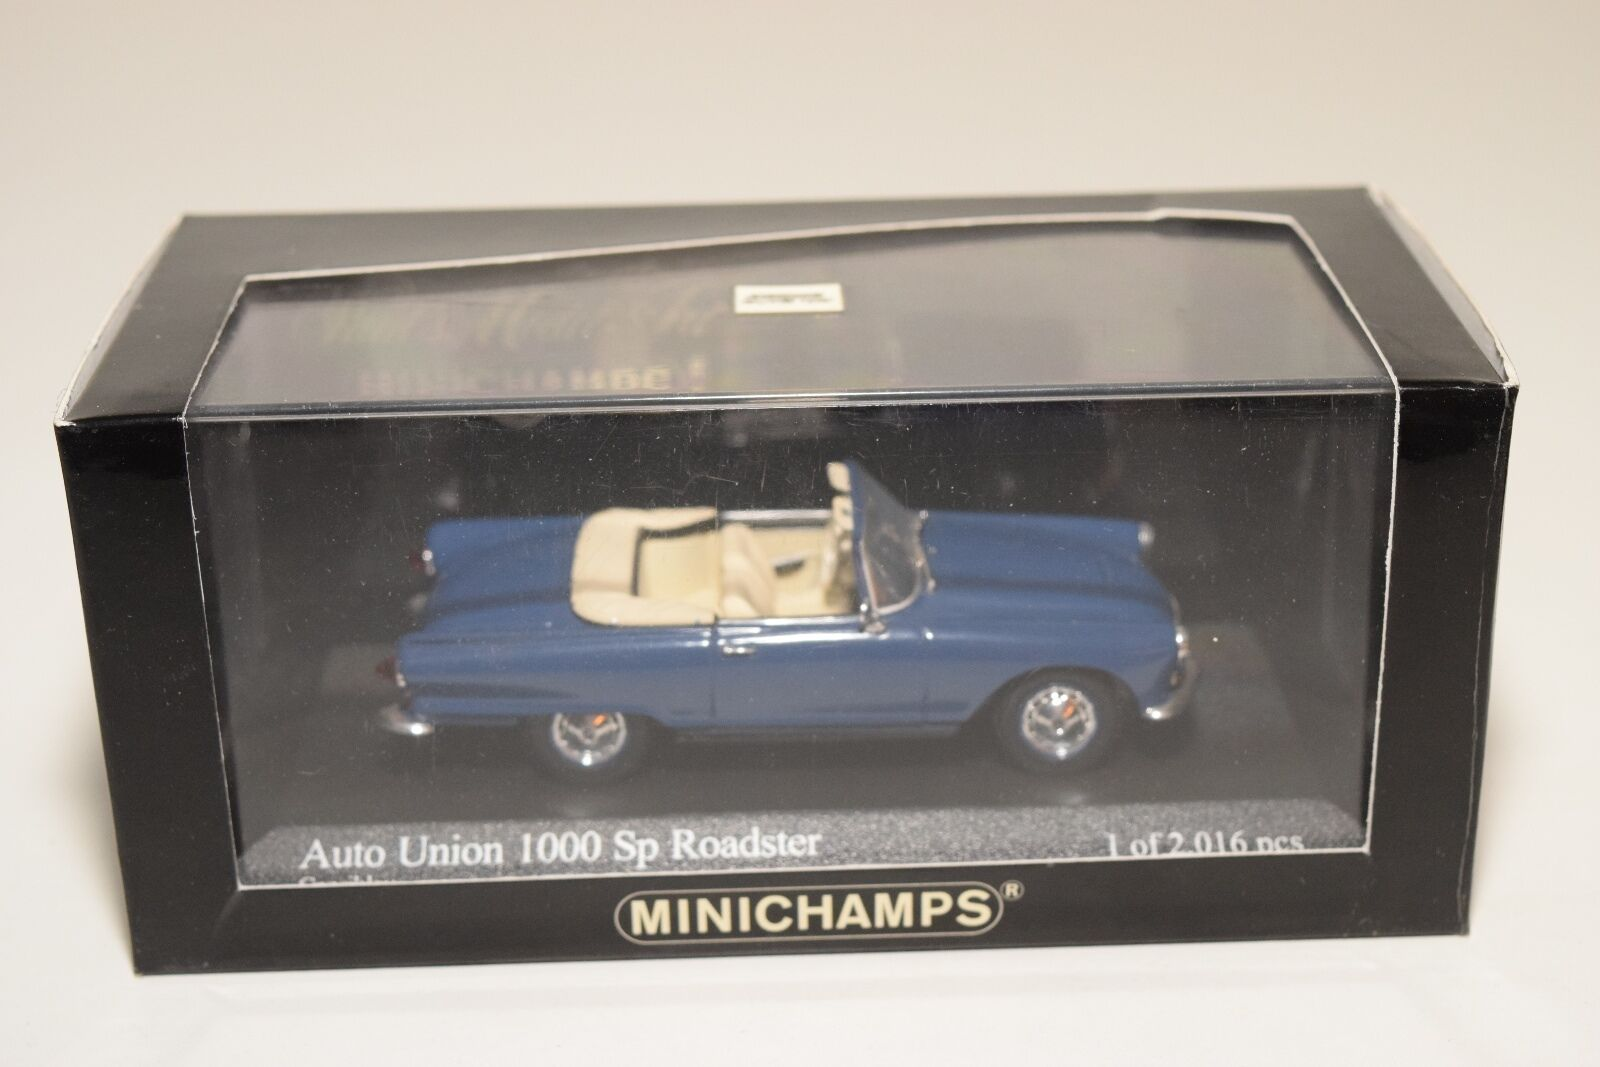 . MINICHAMPS AUTO UNION 1000 SP ROADSTER blueE MINT BOXED